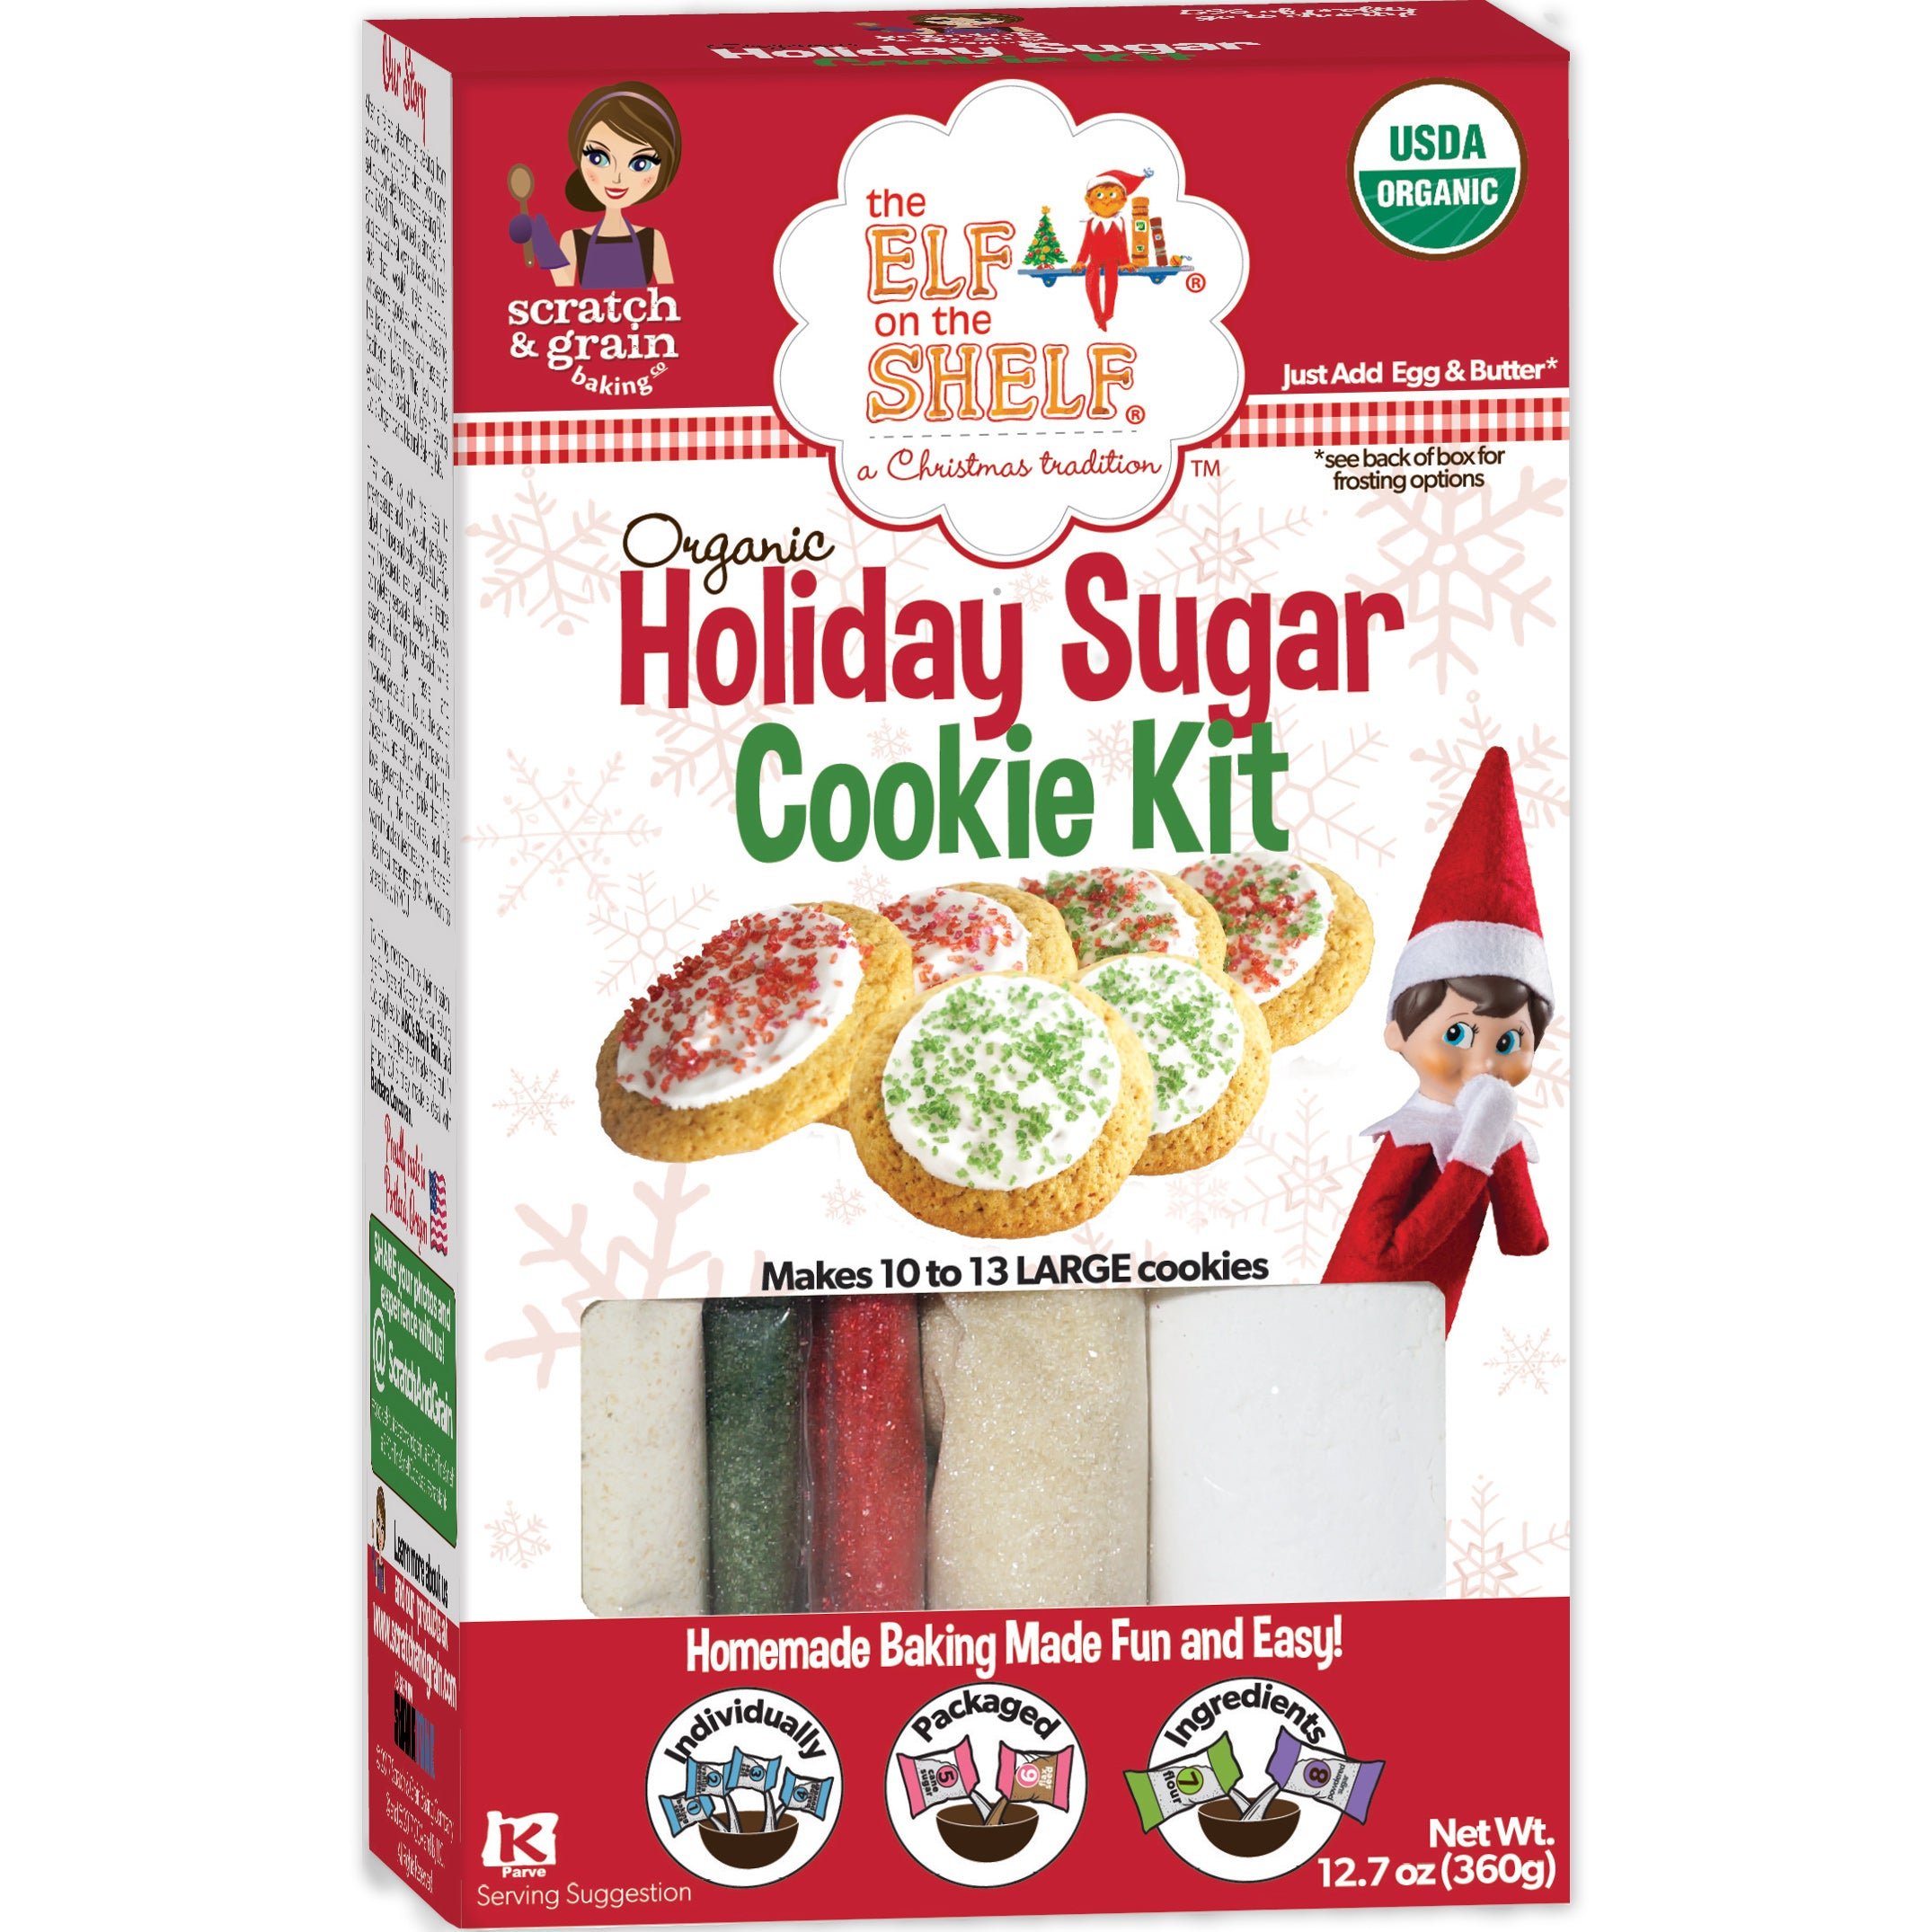 The Elf On The Shelf Organic Holiday Sugar Cookie Kit Scratch